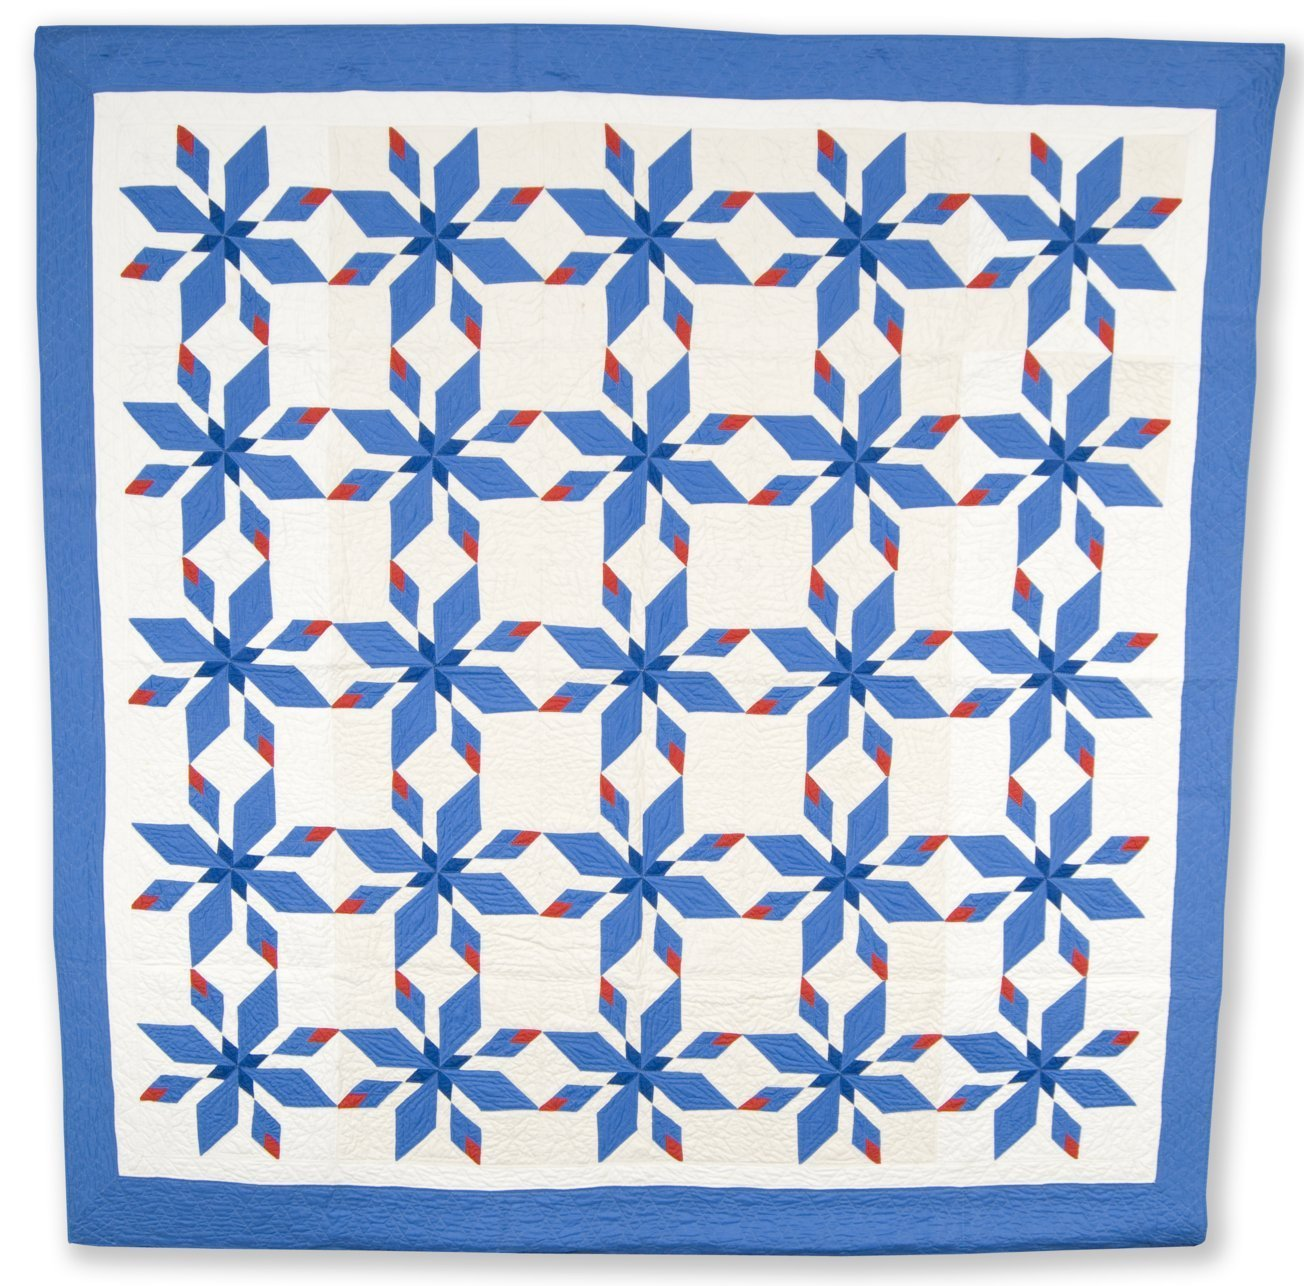 Formosa Tea Leaf quilt